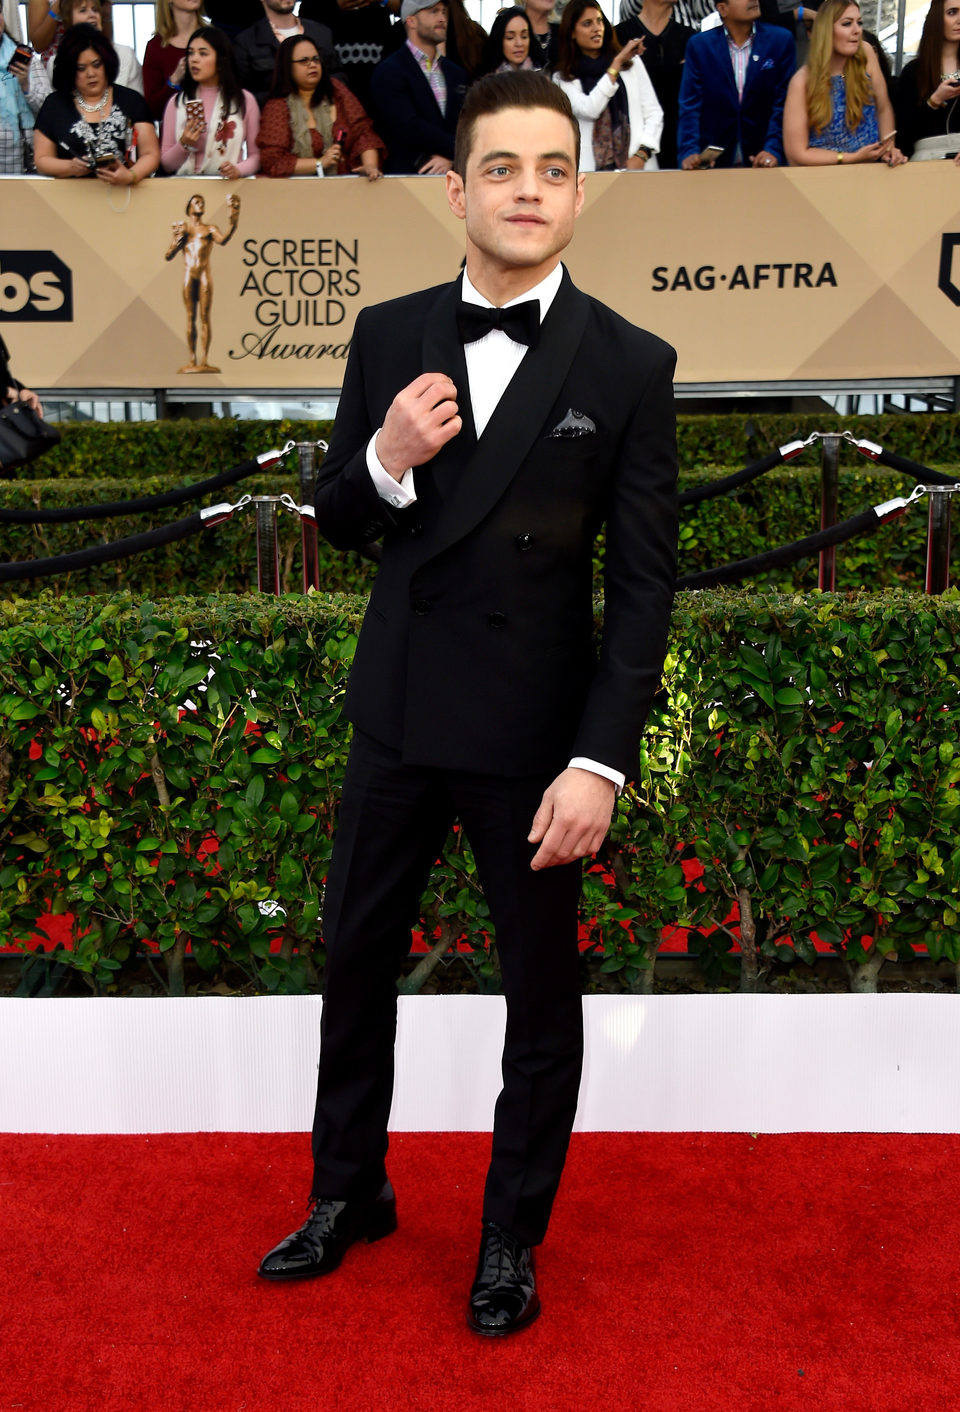 Rami Malek in red carpet of SAG Awards 2016